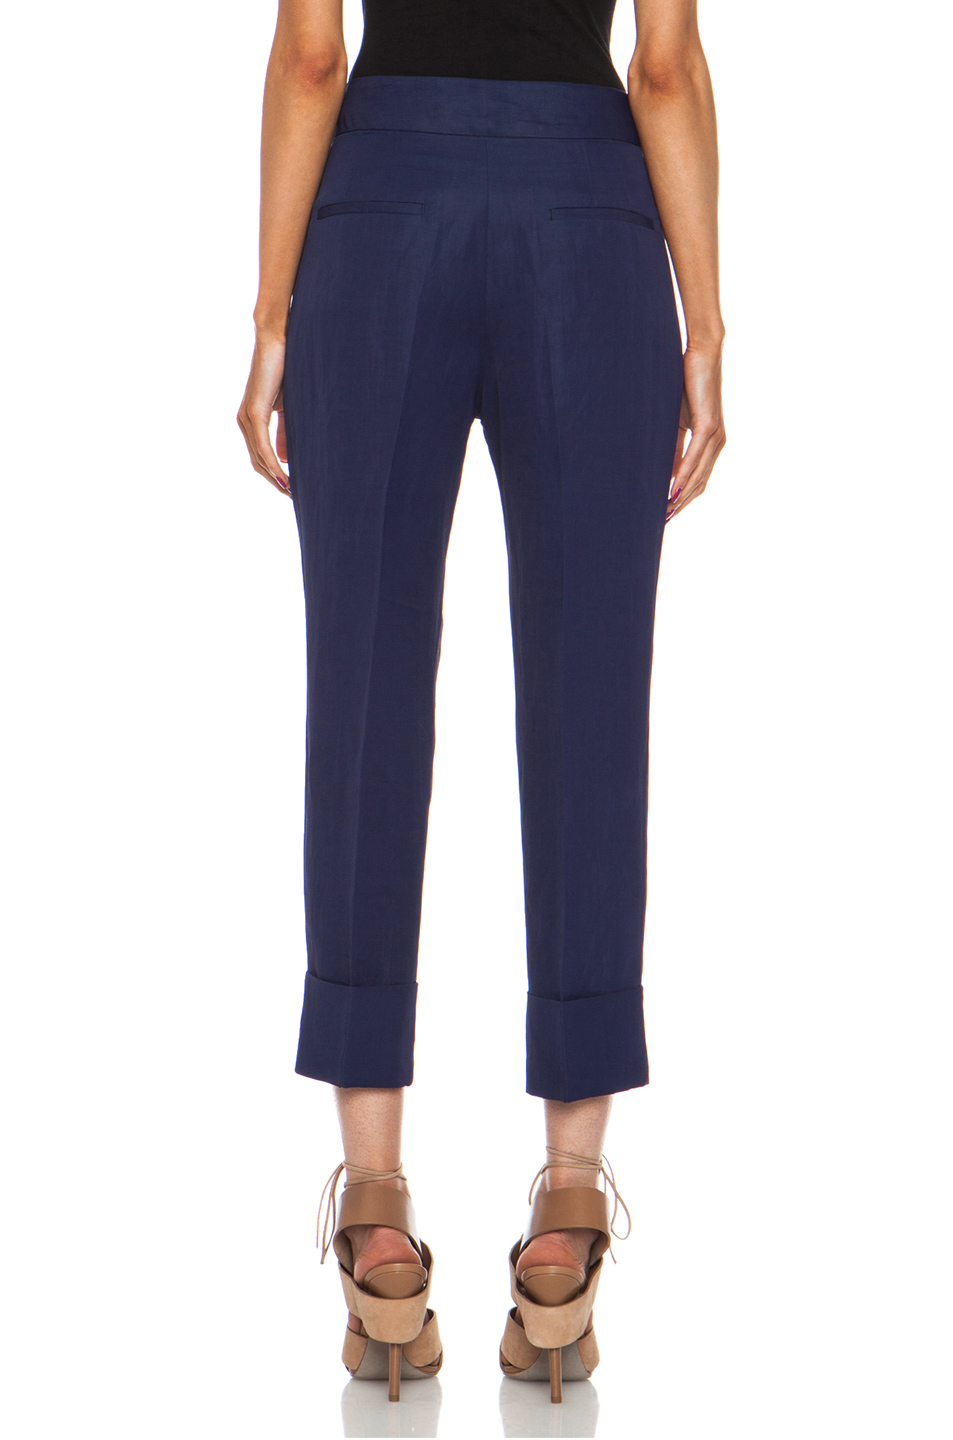 Acne Studios|Saviour Linen-Blend Trouser in Midnight Blue